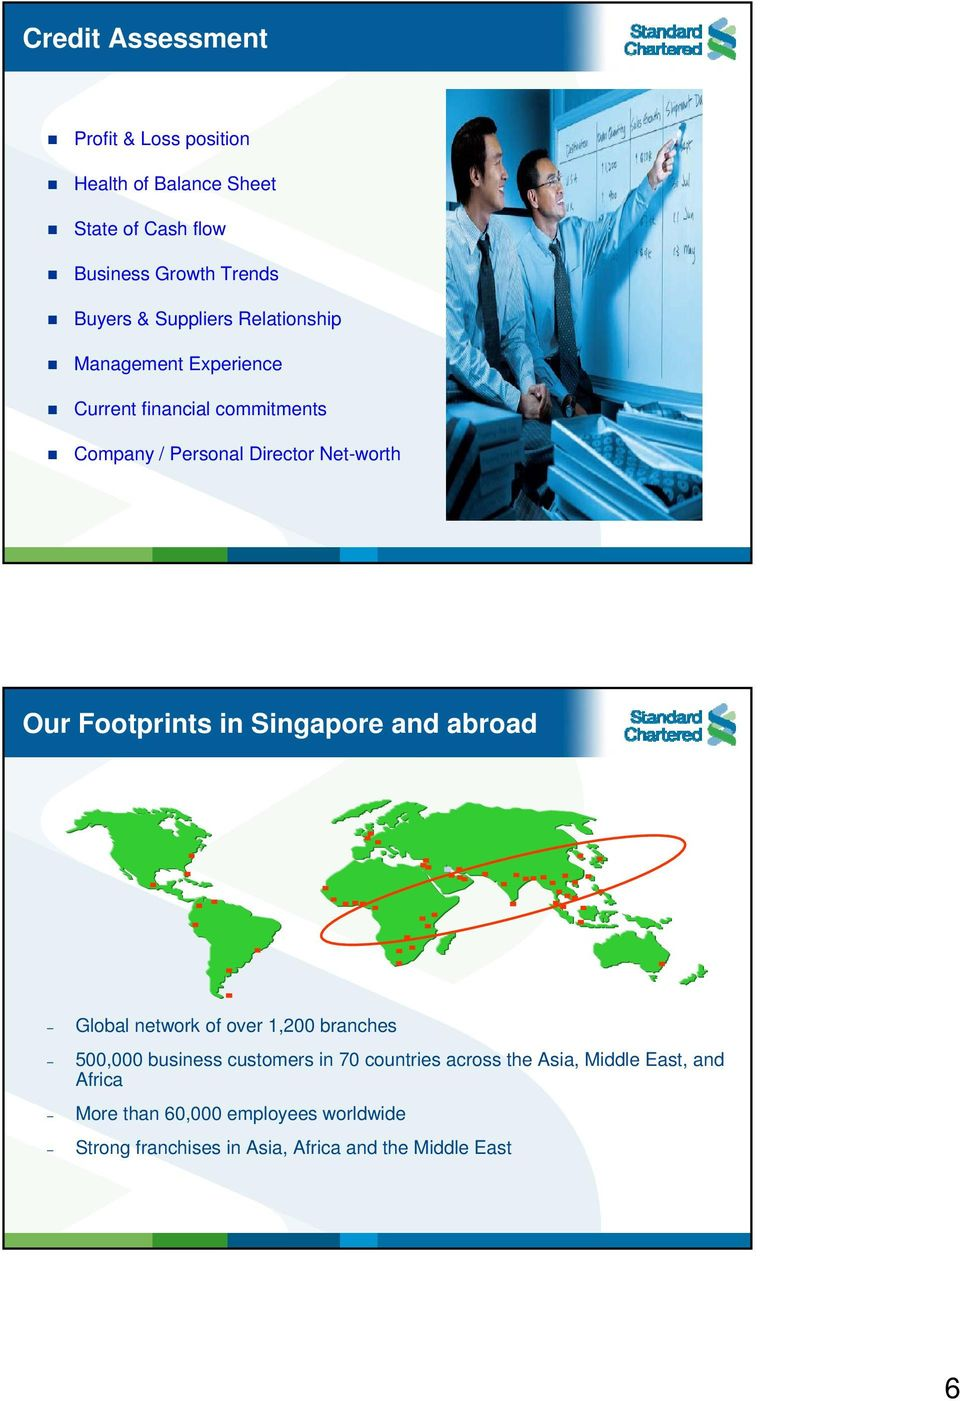 Footprints in Singapore and abroad Global network of over 1,200 branches 500,000 business customers in 70 countries